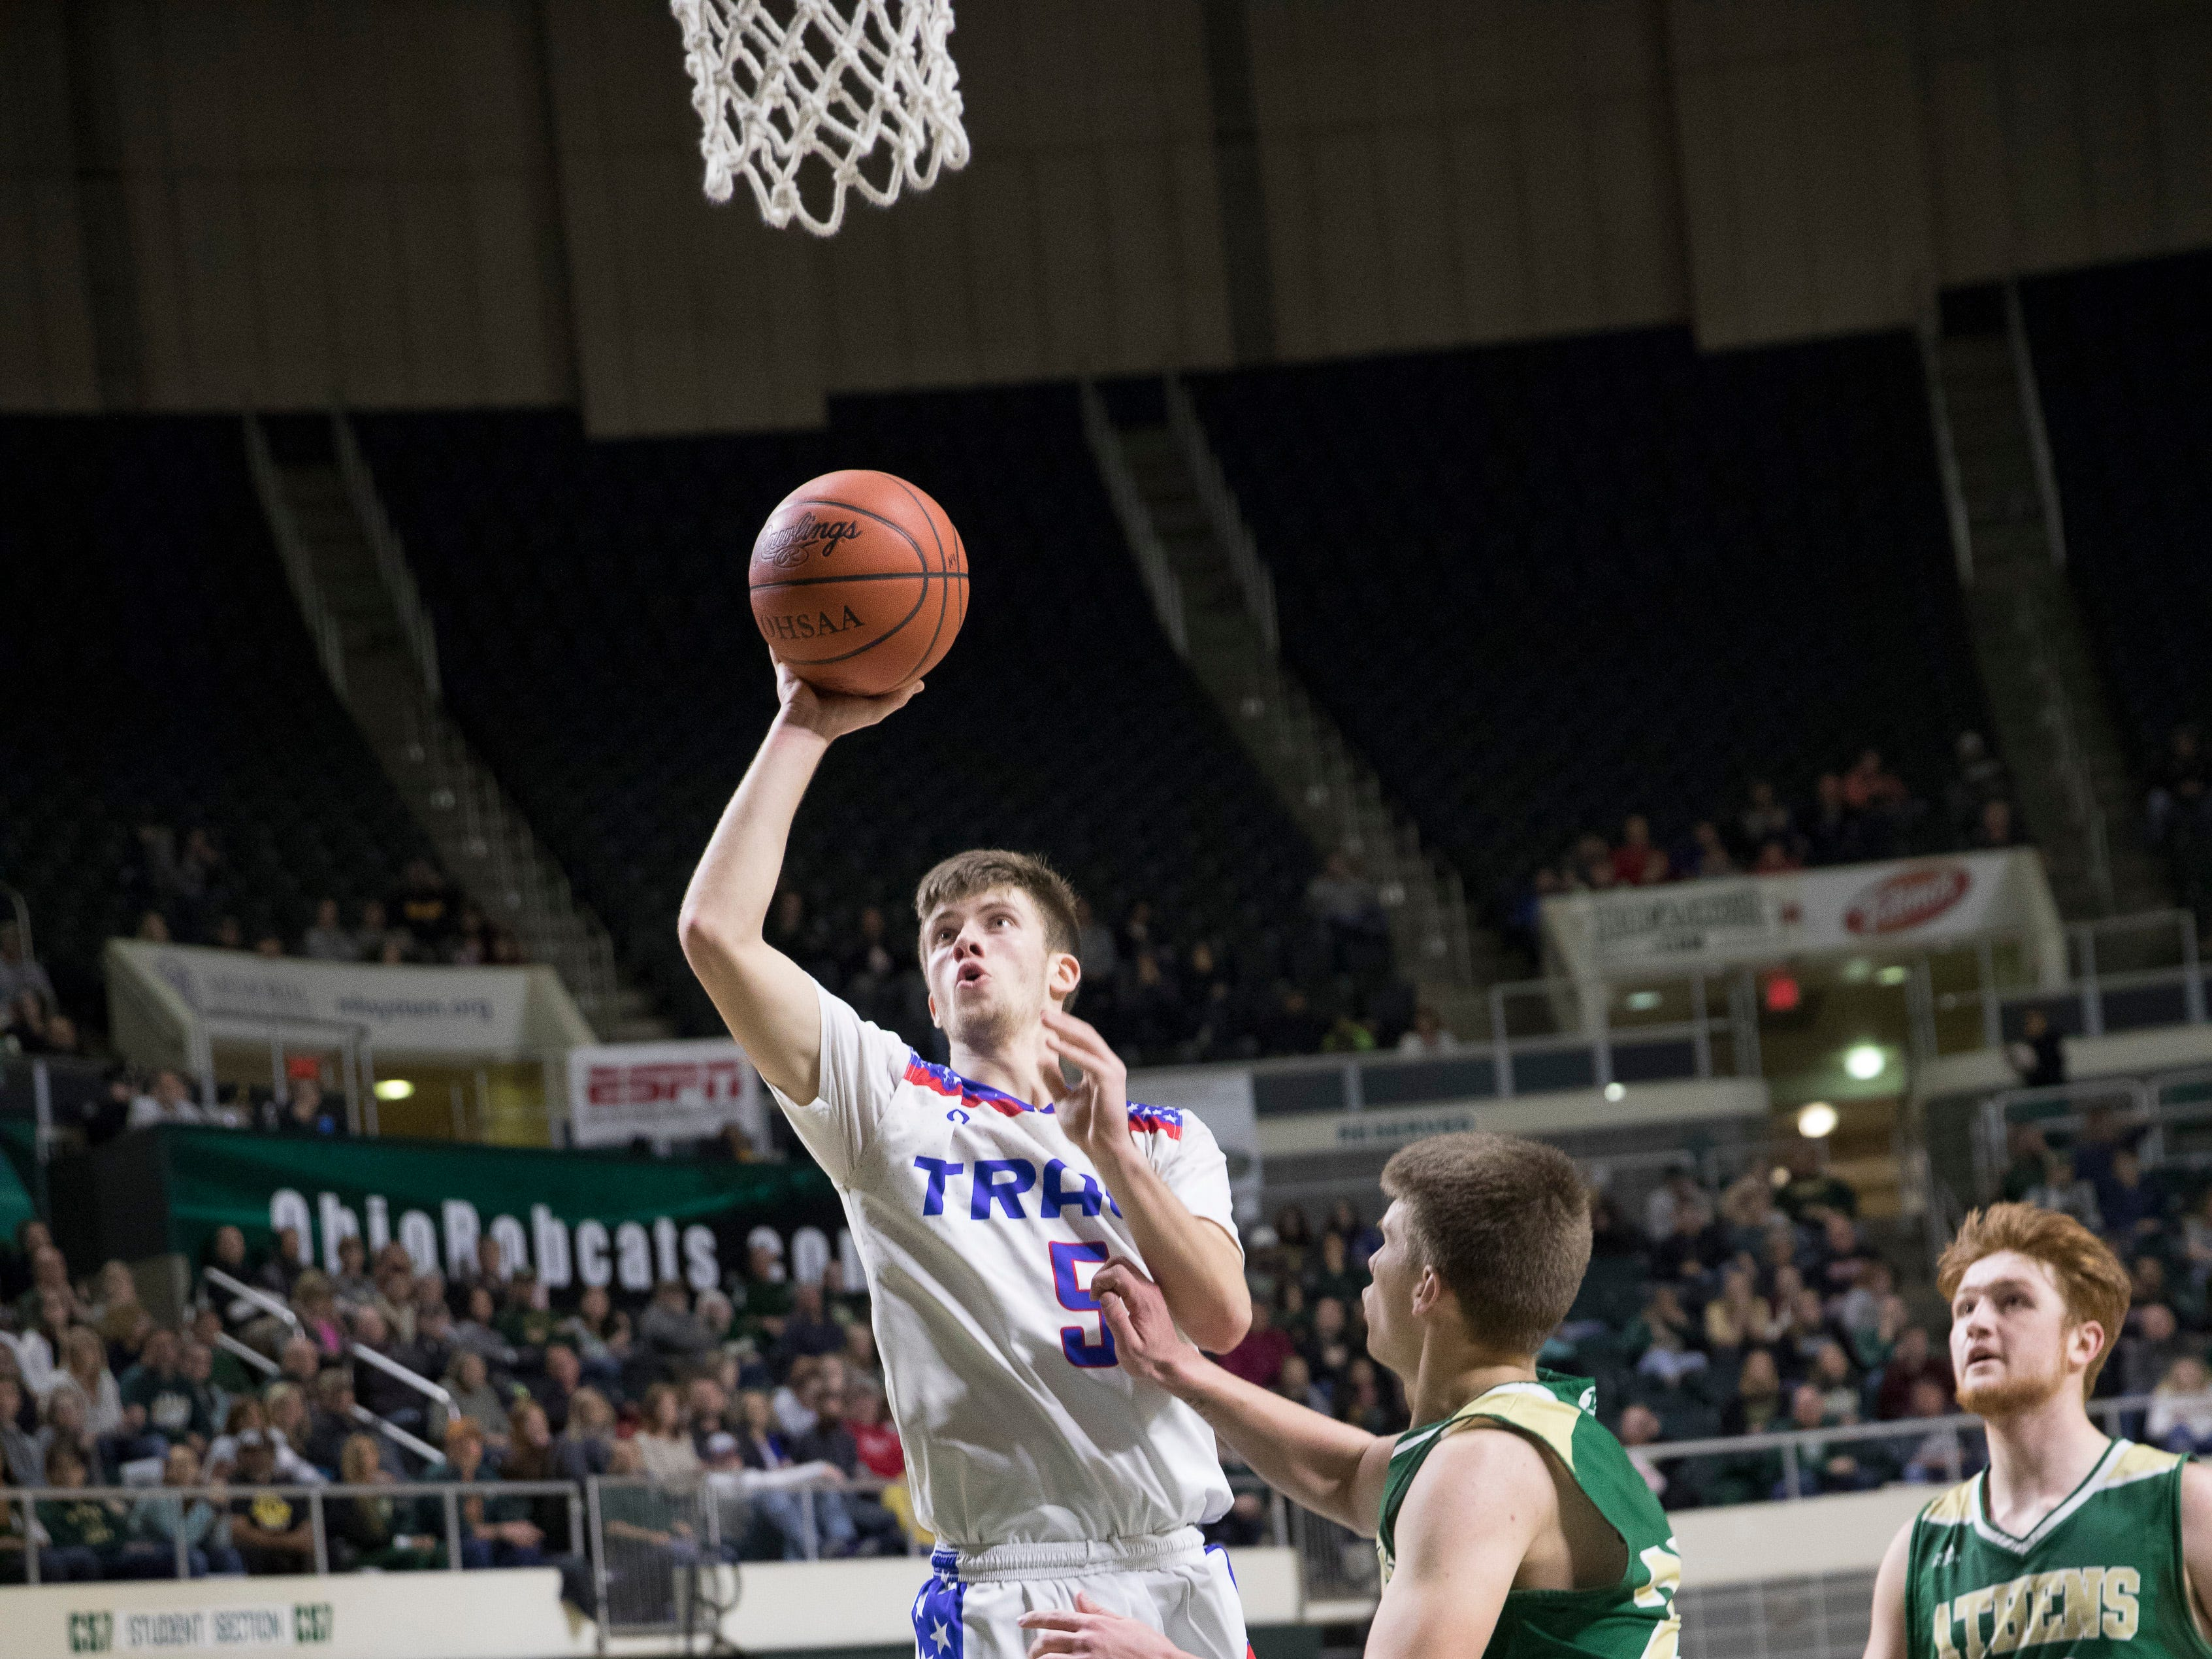 Nick Nesser shoots it over Athens defender at Ohio University's Convocation Center in the Division II District Semifinals on Thursday. Zane Trace defeated the Bulldogs 48-28.